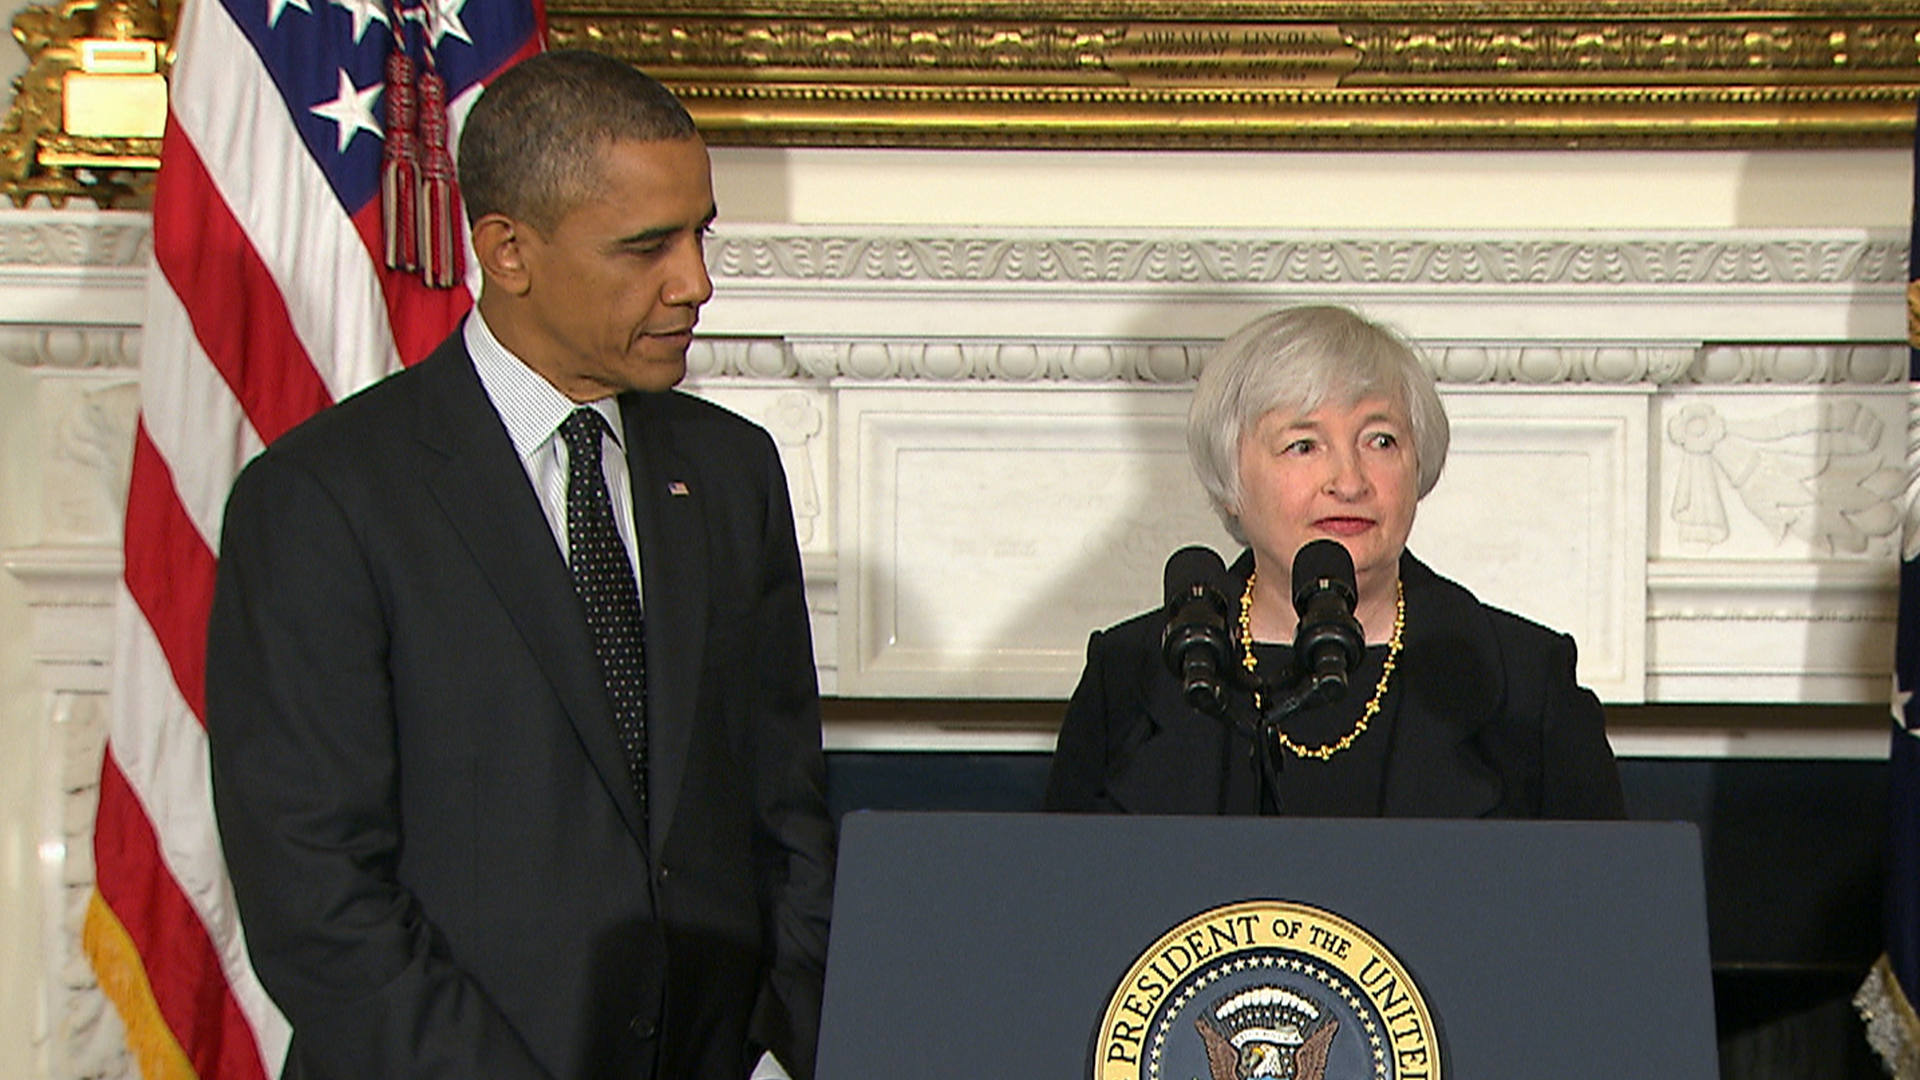 President Obama nominates Yellen as first woman to lead Fed